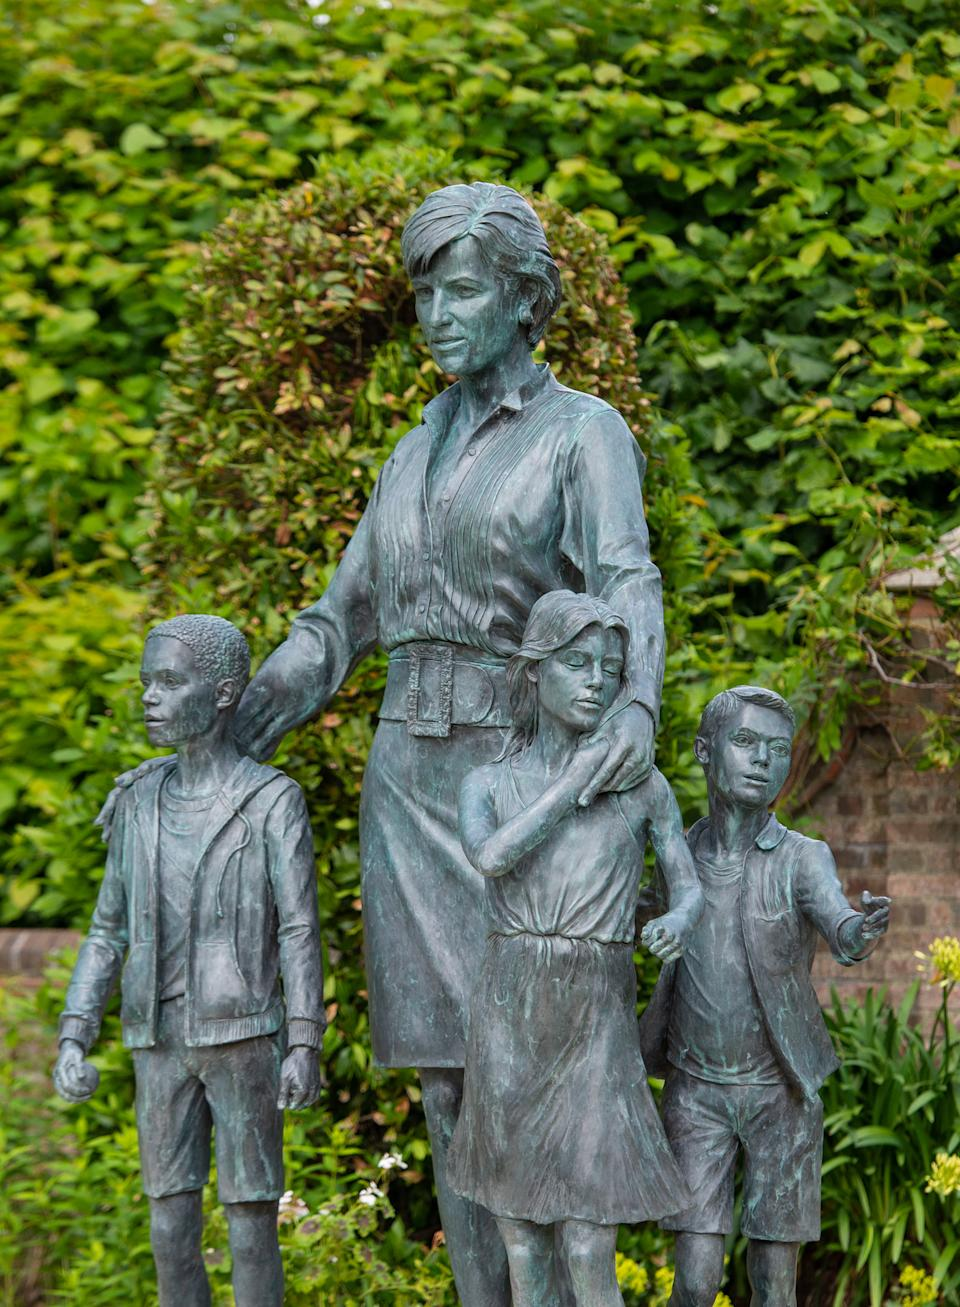 The statue of Diana, Princess of Wales, by artist Ian Rank-Broadley, unveiled by Britain's Prince William, Duke of Cambridge and Britain's Prince Harry, Duke of Sussex, is pictured at The Sunken Garden in Kensington Palace, London on July 1, 2021, which would have been her 60th birthday. - The bronze statue depicts the princess surrounded by three children to represent the